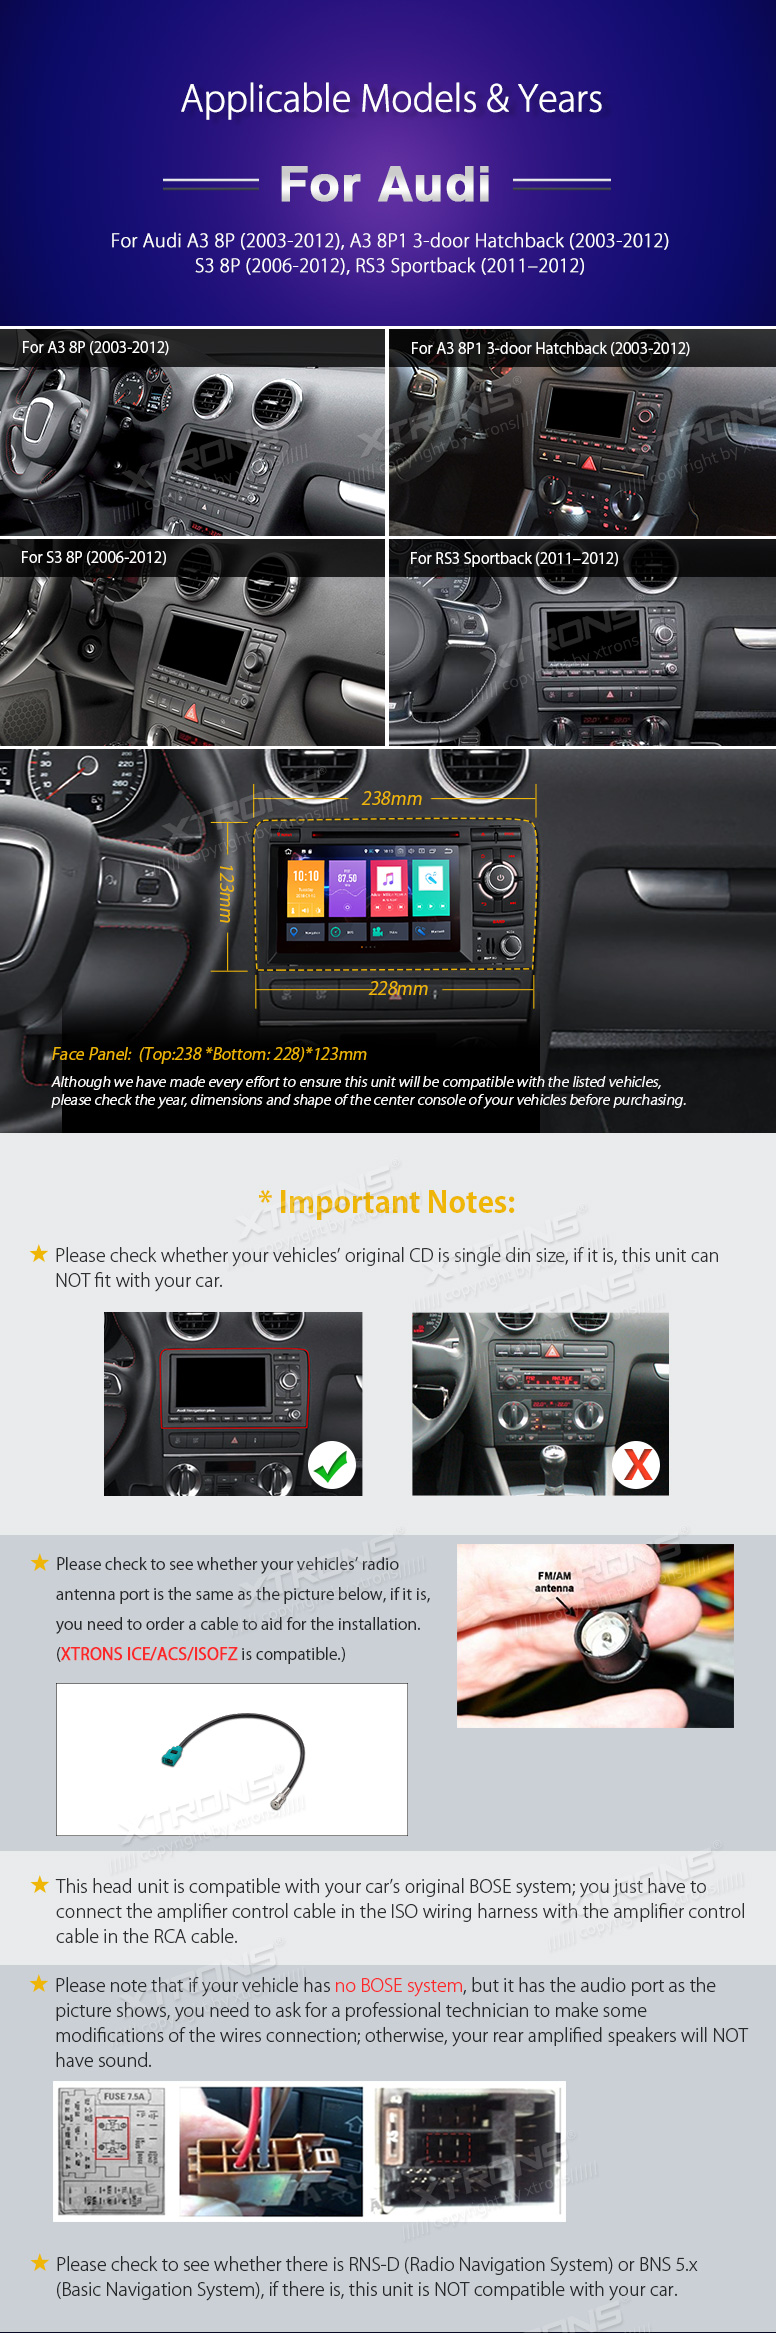 Xtrons 7 Hd Android 80 Octa Core Radio Car Dvd Player For Audi A3 Wire Harness Amp Cable Technician Pb78aa3rp 01 02 03 04